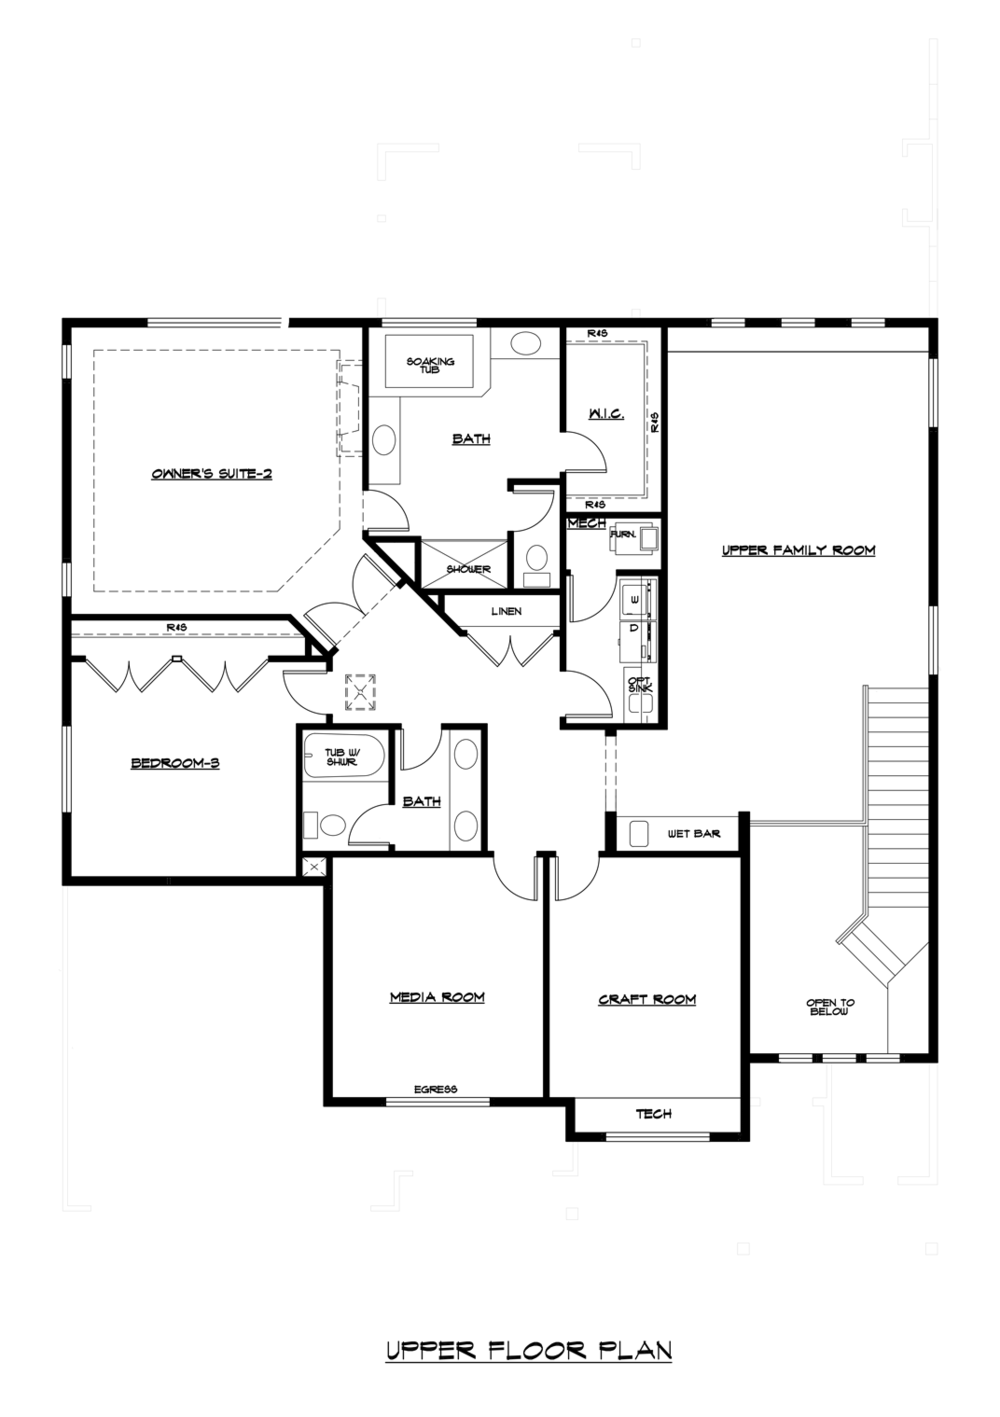 SBG_Homes-LakeKathleen_60-upper_floor-drawing.png